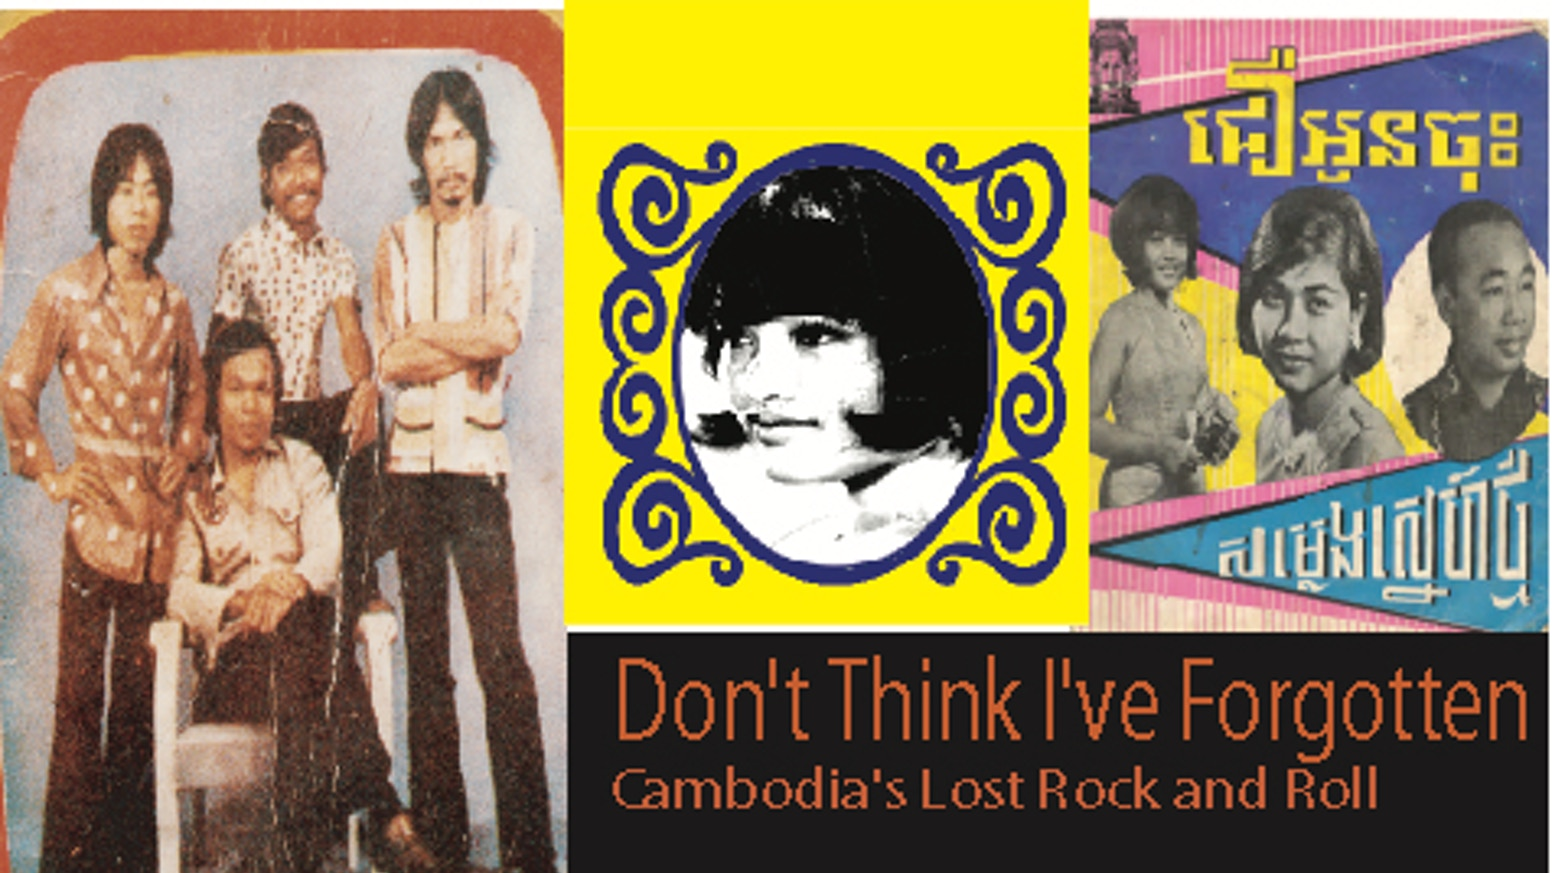 Don't Think I've Forgotten: Cambodia Lost Rock n Roll by John